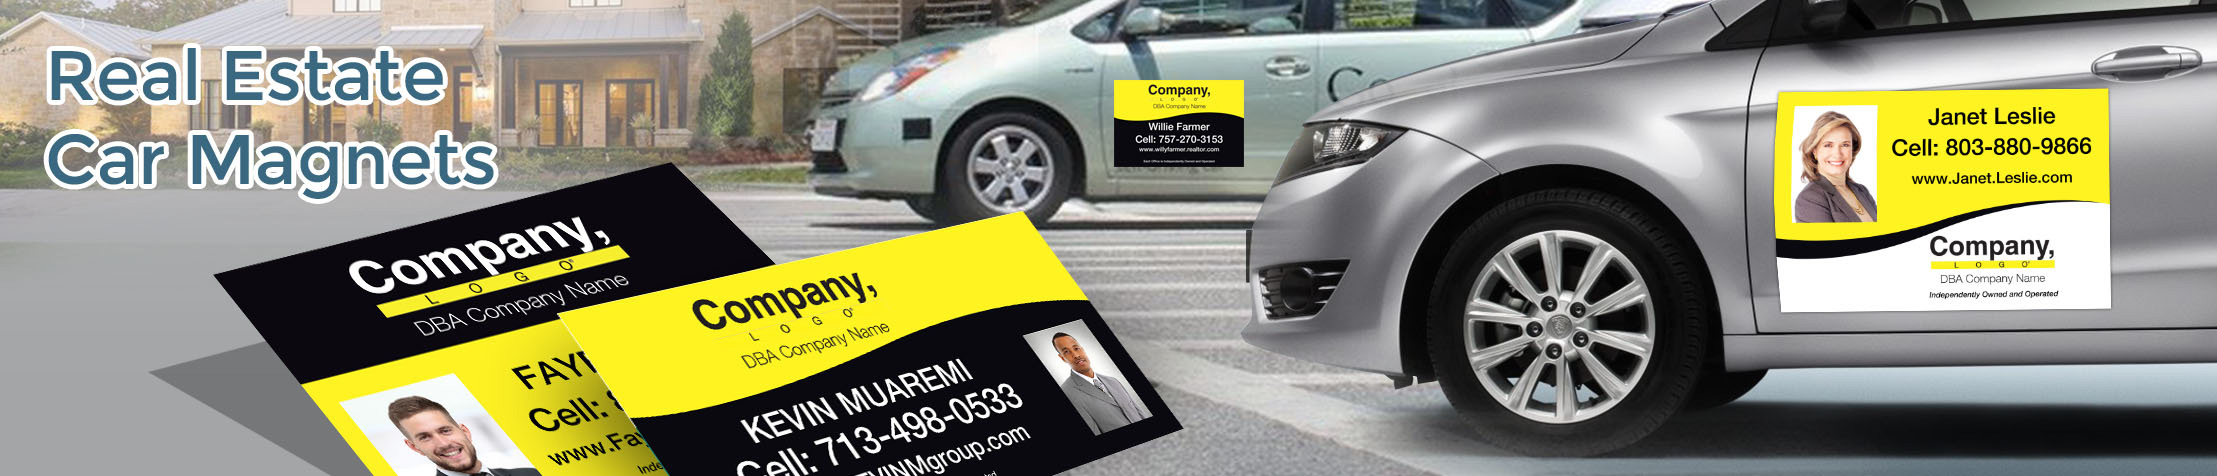 Weichert Real Estate Car Magnets - Weichert  custom car magnets for realtors, with or without photo | BestPrintBuy.com